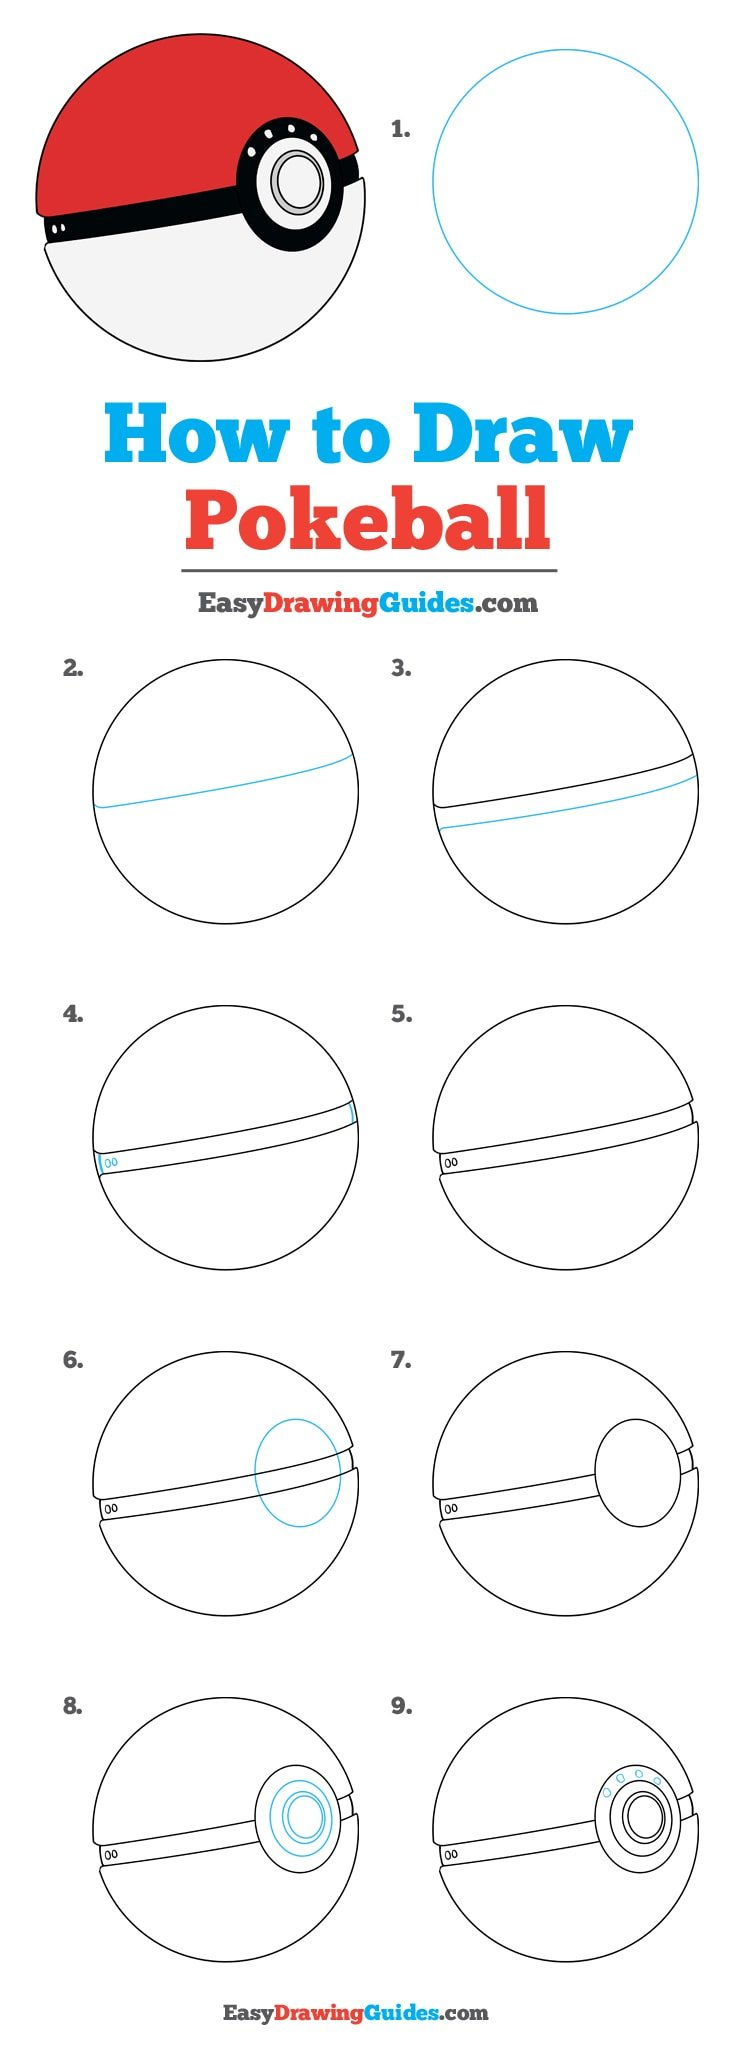 How to Draw Poke Ball